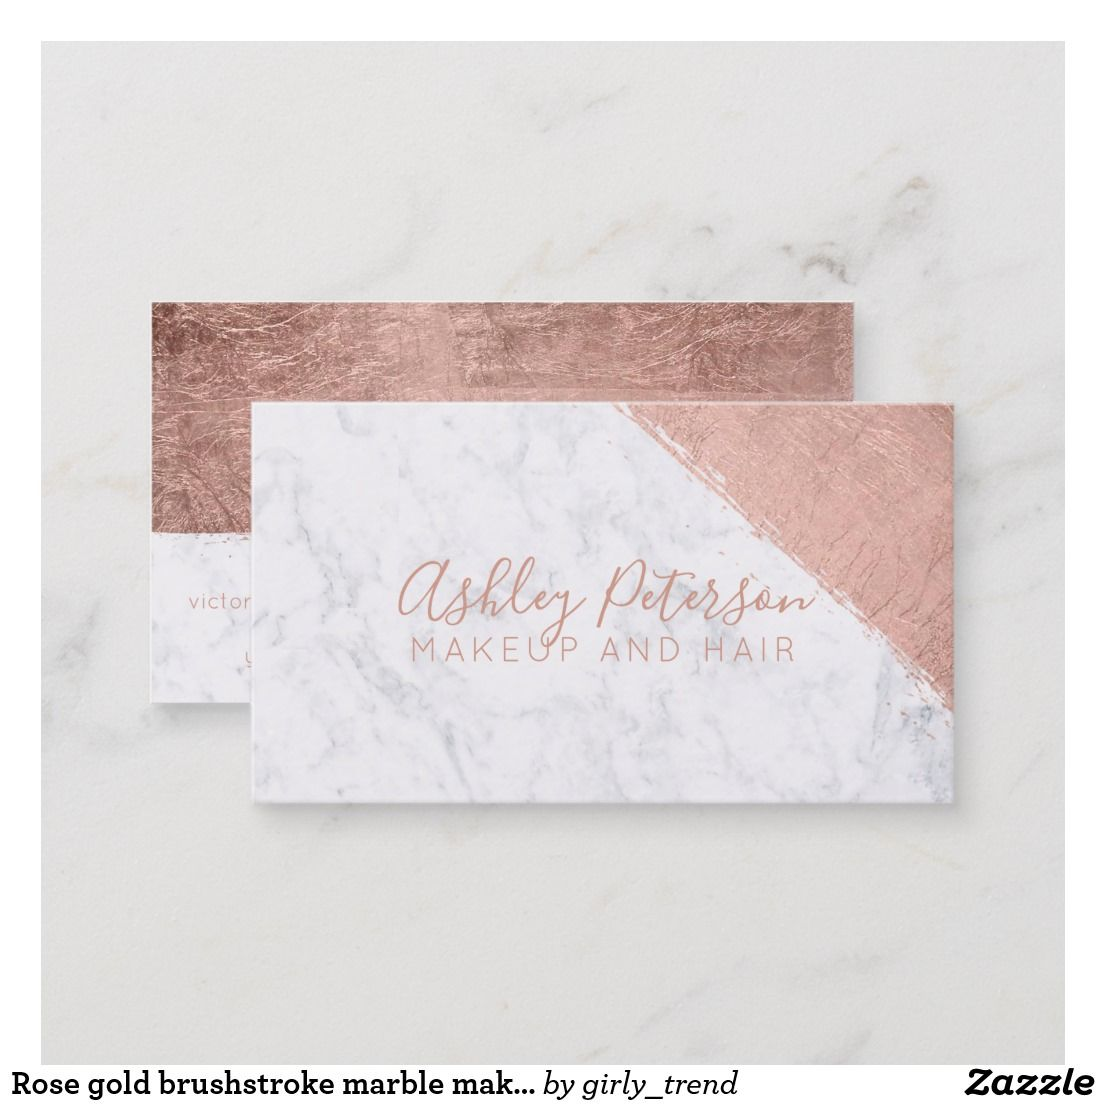 Rose Gold Brushstroke Marble Makeup Typography Business Card Zazzle Com In 2021 Typography Business Cards Business Card Design Visiting Cards